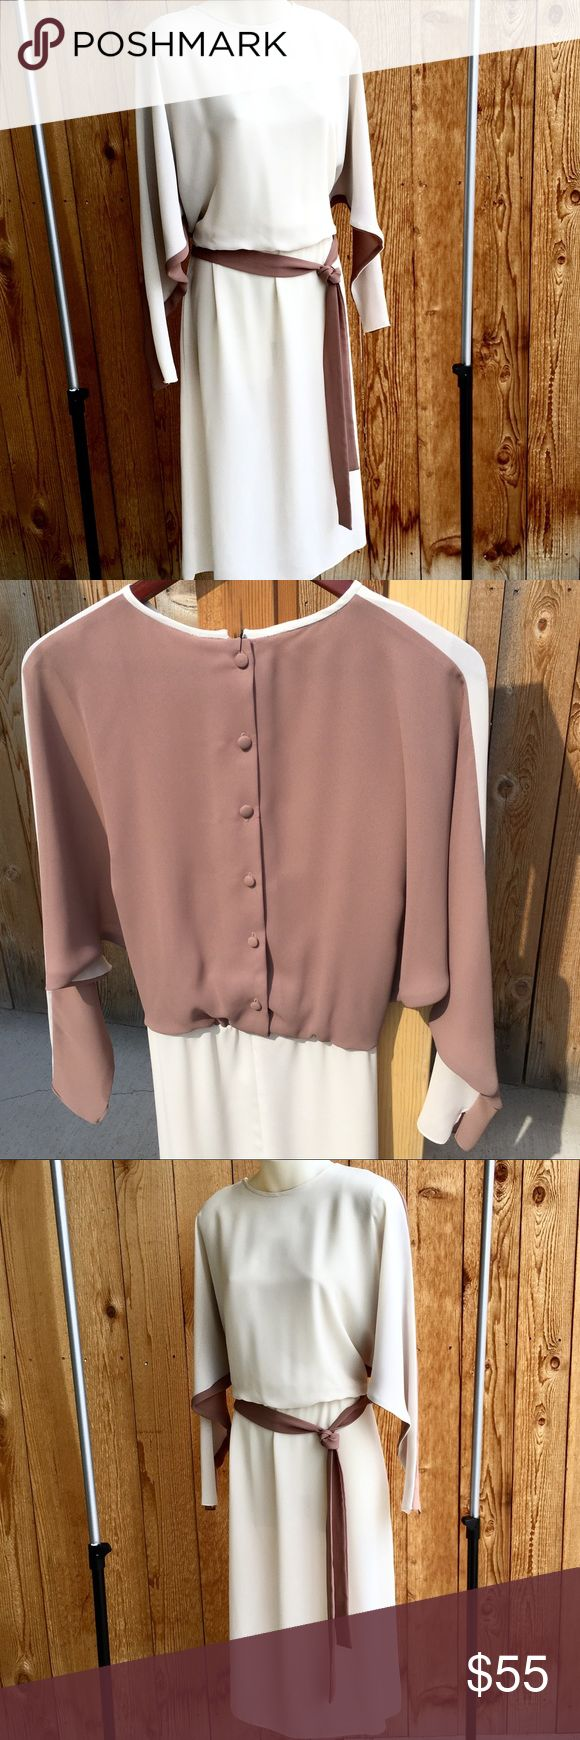 """🏵VINTAGE MONICA RICHARDS 🏵VINTAGE MONICA RICHARDS. TAUPE AND CREAM CHIFFON DOLMAN BUTTON BACK. 43.5""""L, 17""""-18 ARMPIT TO ARMPIT BUST, SLEEVES 24"""" FROM TOP OF SHOULDER, ELASTIC WAIST NATURAL FIT TO 34"""". ATTACHED VERSATILE TIE. AND THE TAG GAVE WAY WITHOUT RIPS TO THE SEAM SO I KEPT ATTACHED WITH SAFETY PIN. BUTTONS AWESOME: THE COVERING AND BUTTON HOLES GREAT. NO STAINS HOLES! STITCHING IS TOTALLY FINE. VG VINTAGE CONDITION. Vintage Dresses"""